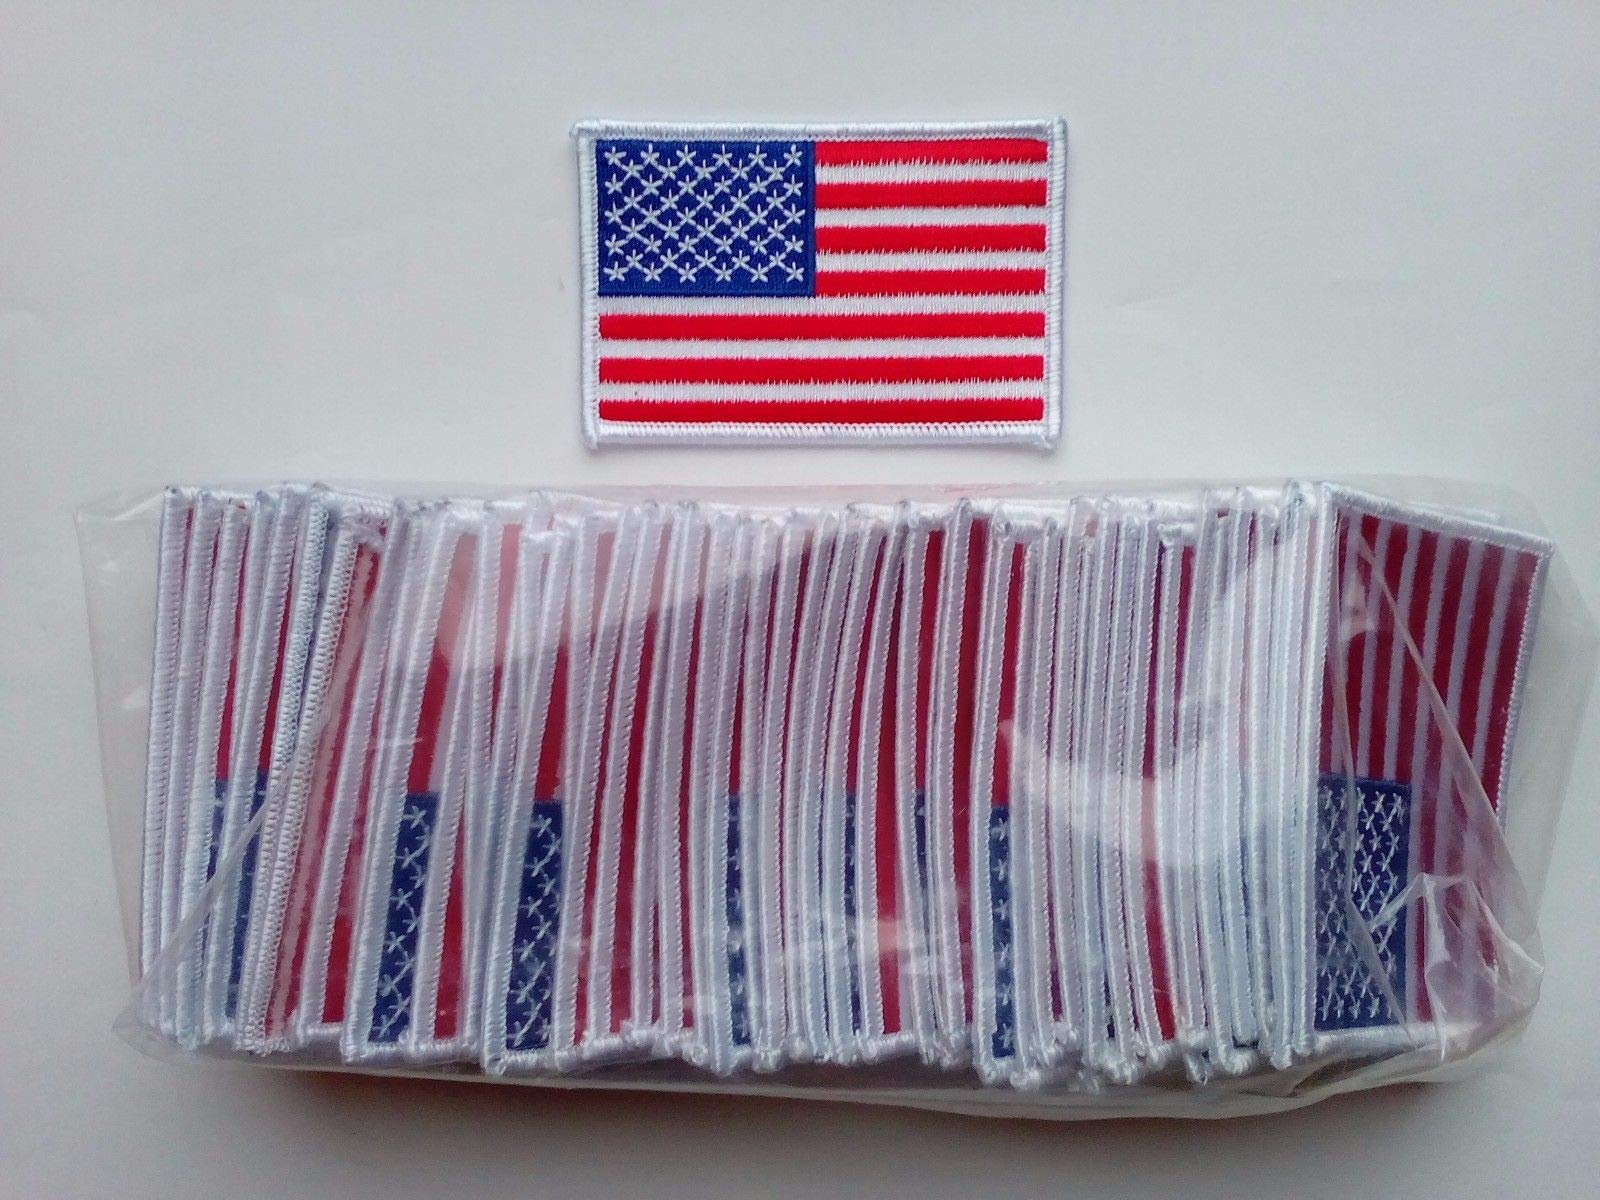 50 Pcs USA American Flag (W) Embroidered Patches 3.5x2.25 Iron-on by Stripeo